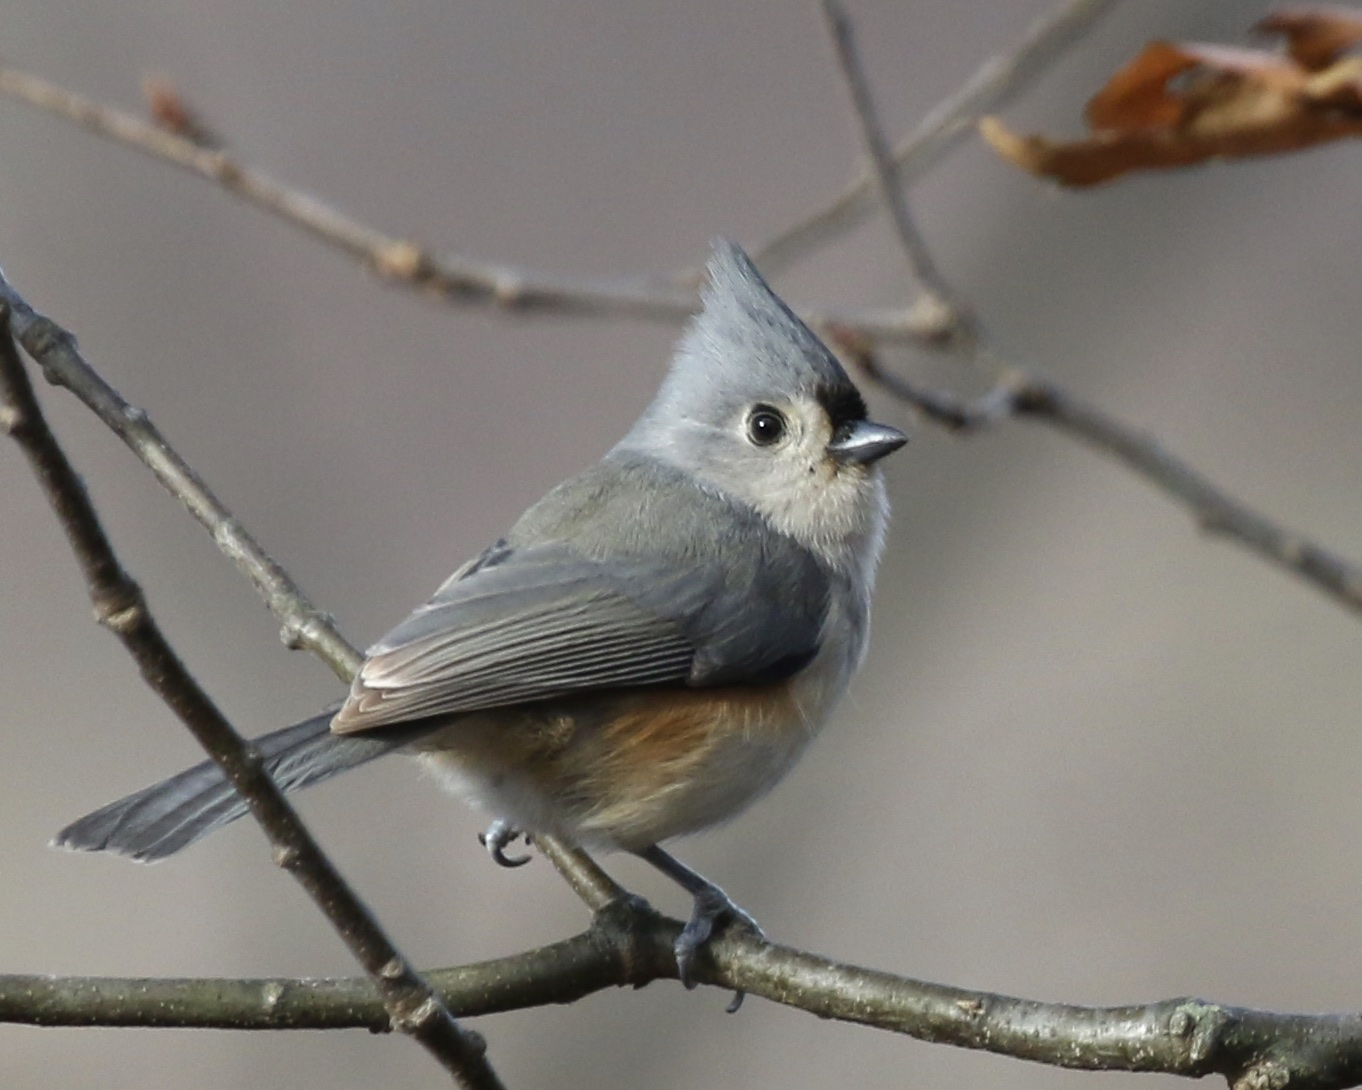 Tufted Titmouse at Laurel Grove Cemetery in Port Jervis, 11/23/14.